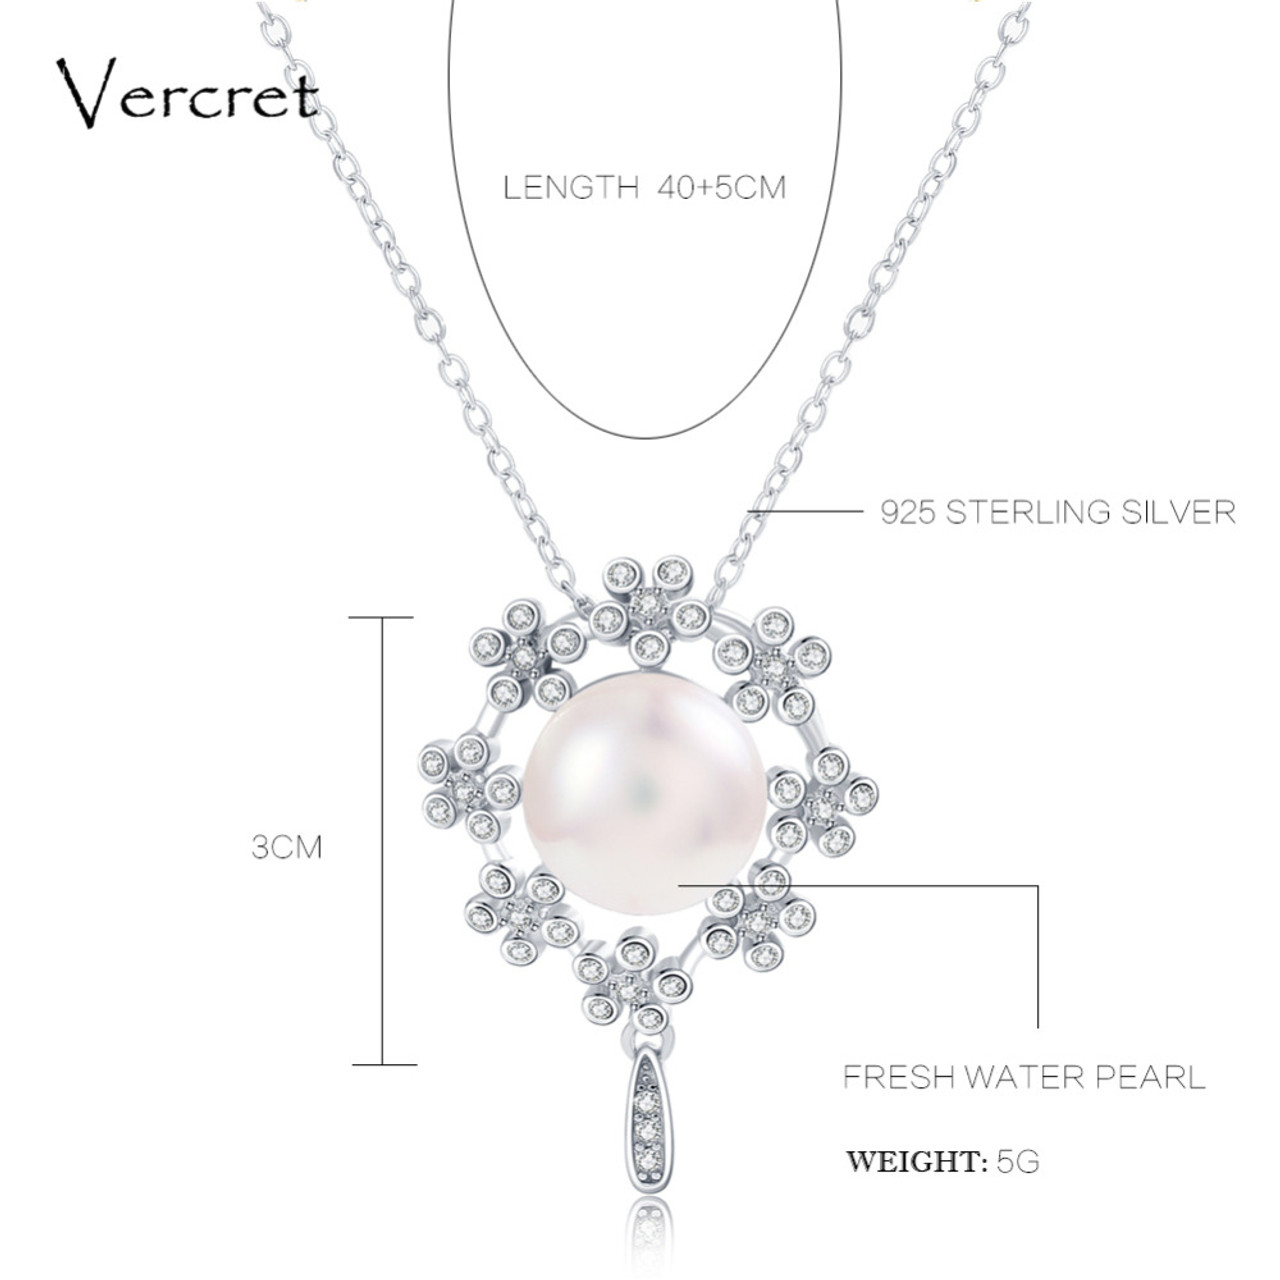 Vercret freshwater pearl pendant necklace with crystal in 925 vercret freshwater pearl pendant necklace with crystal in 925 sterling silver garland pearl jewelry wedding gift mozeypictures Image collections